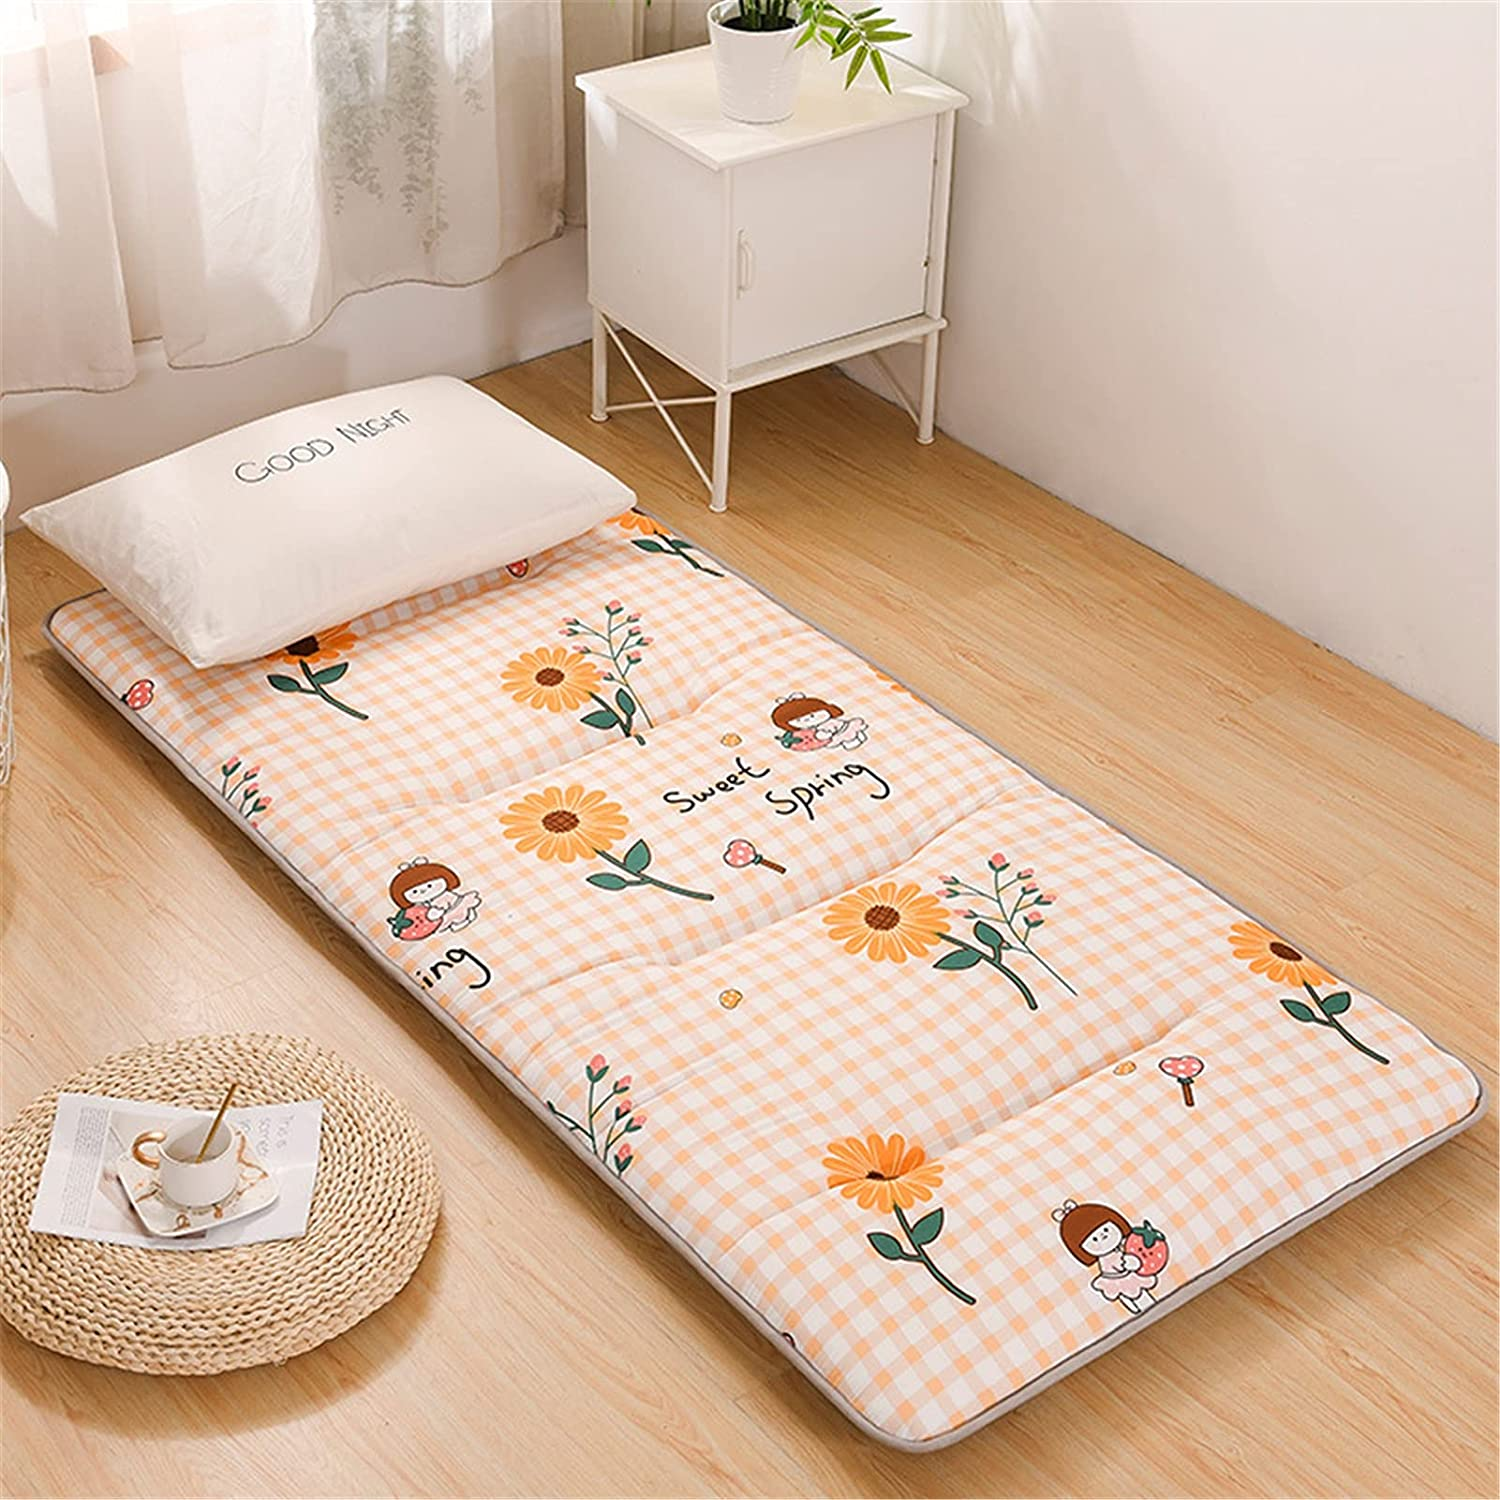 Futon Mattress 5cm Thick Foldable Sale SALE% OFF Floor N OFFicial site Topper Tatami